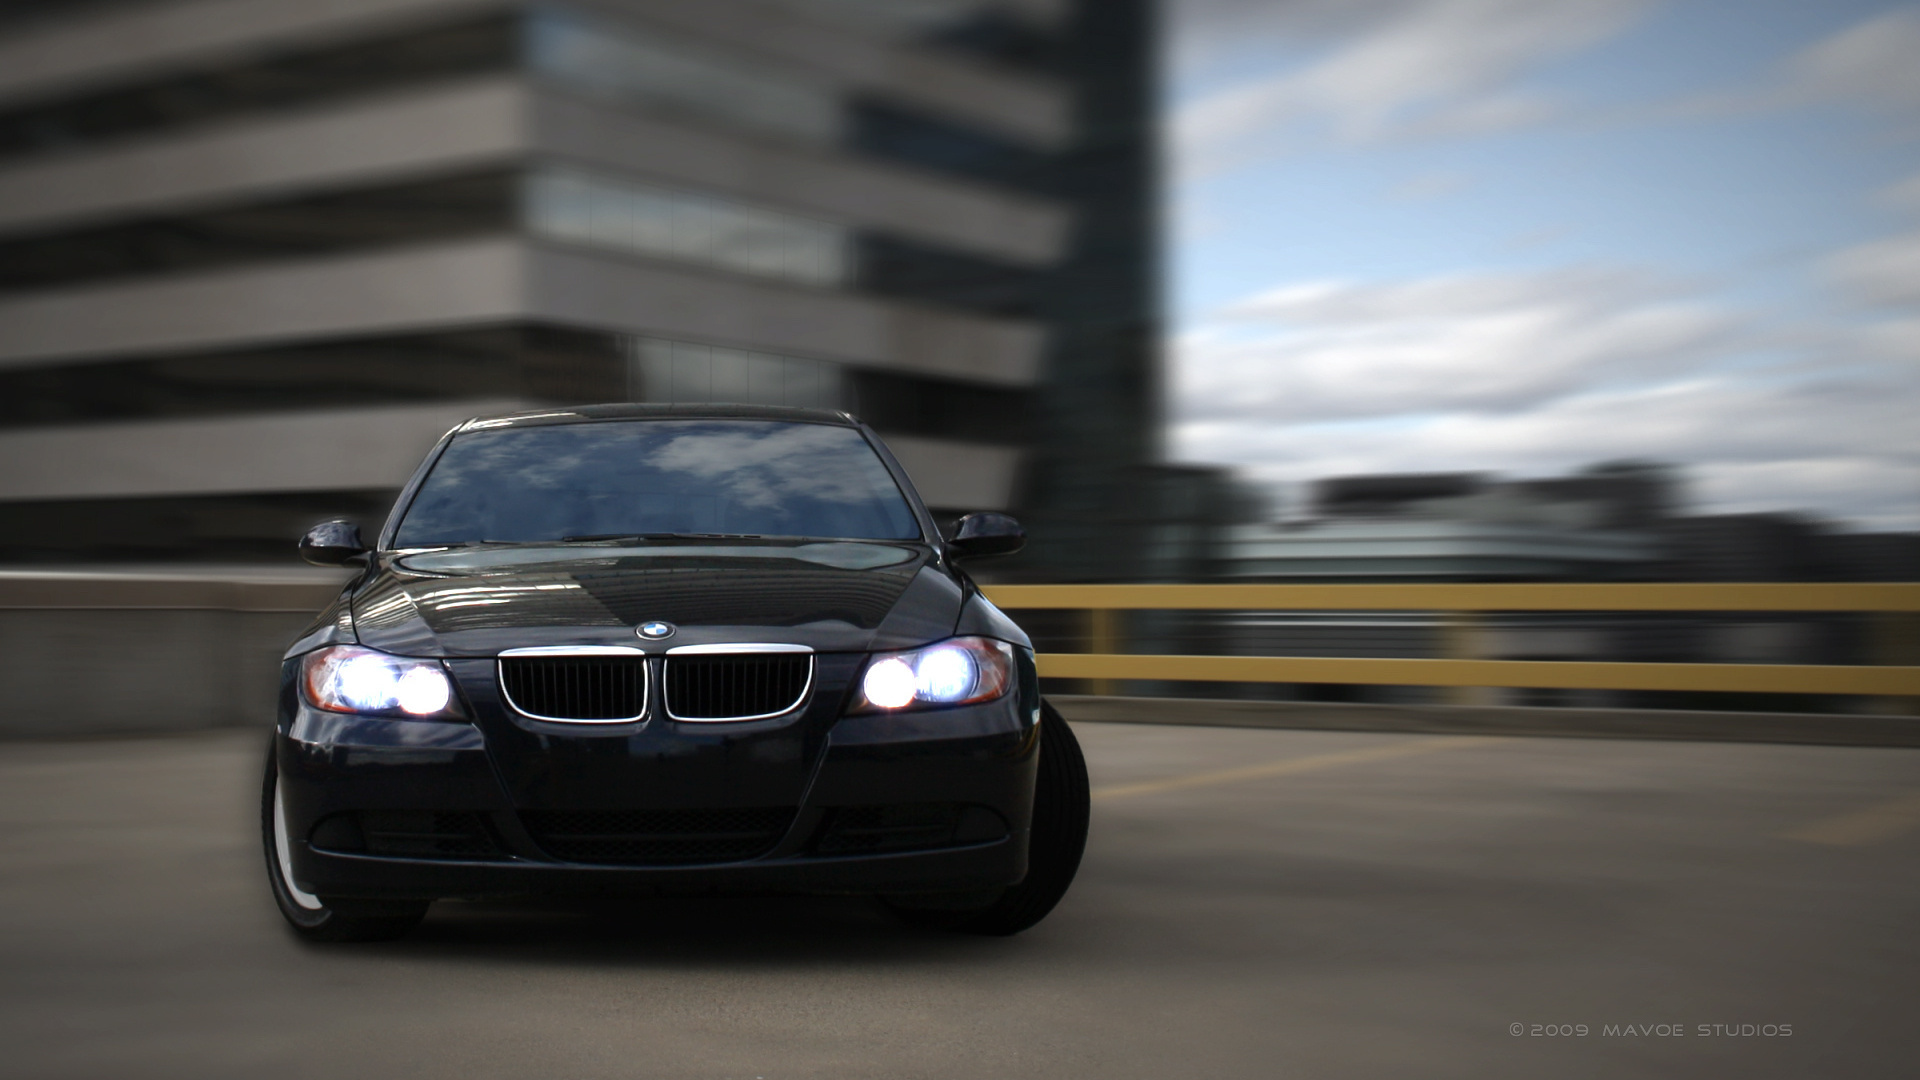 Drifting Bmw Wallpaper Wallpaper Wide Hd